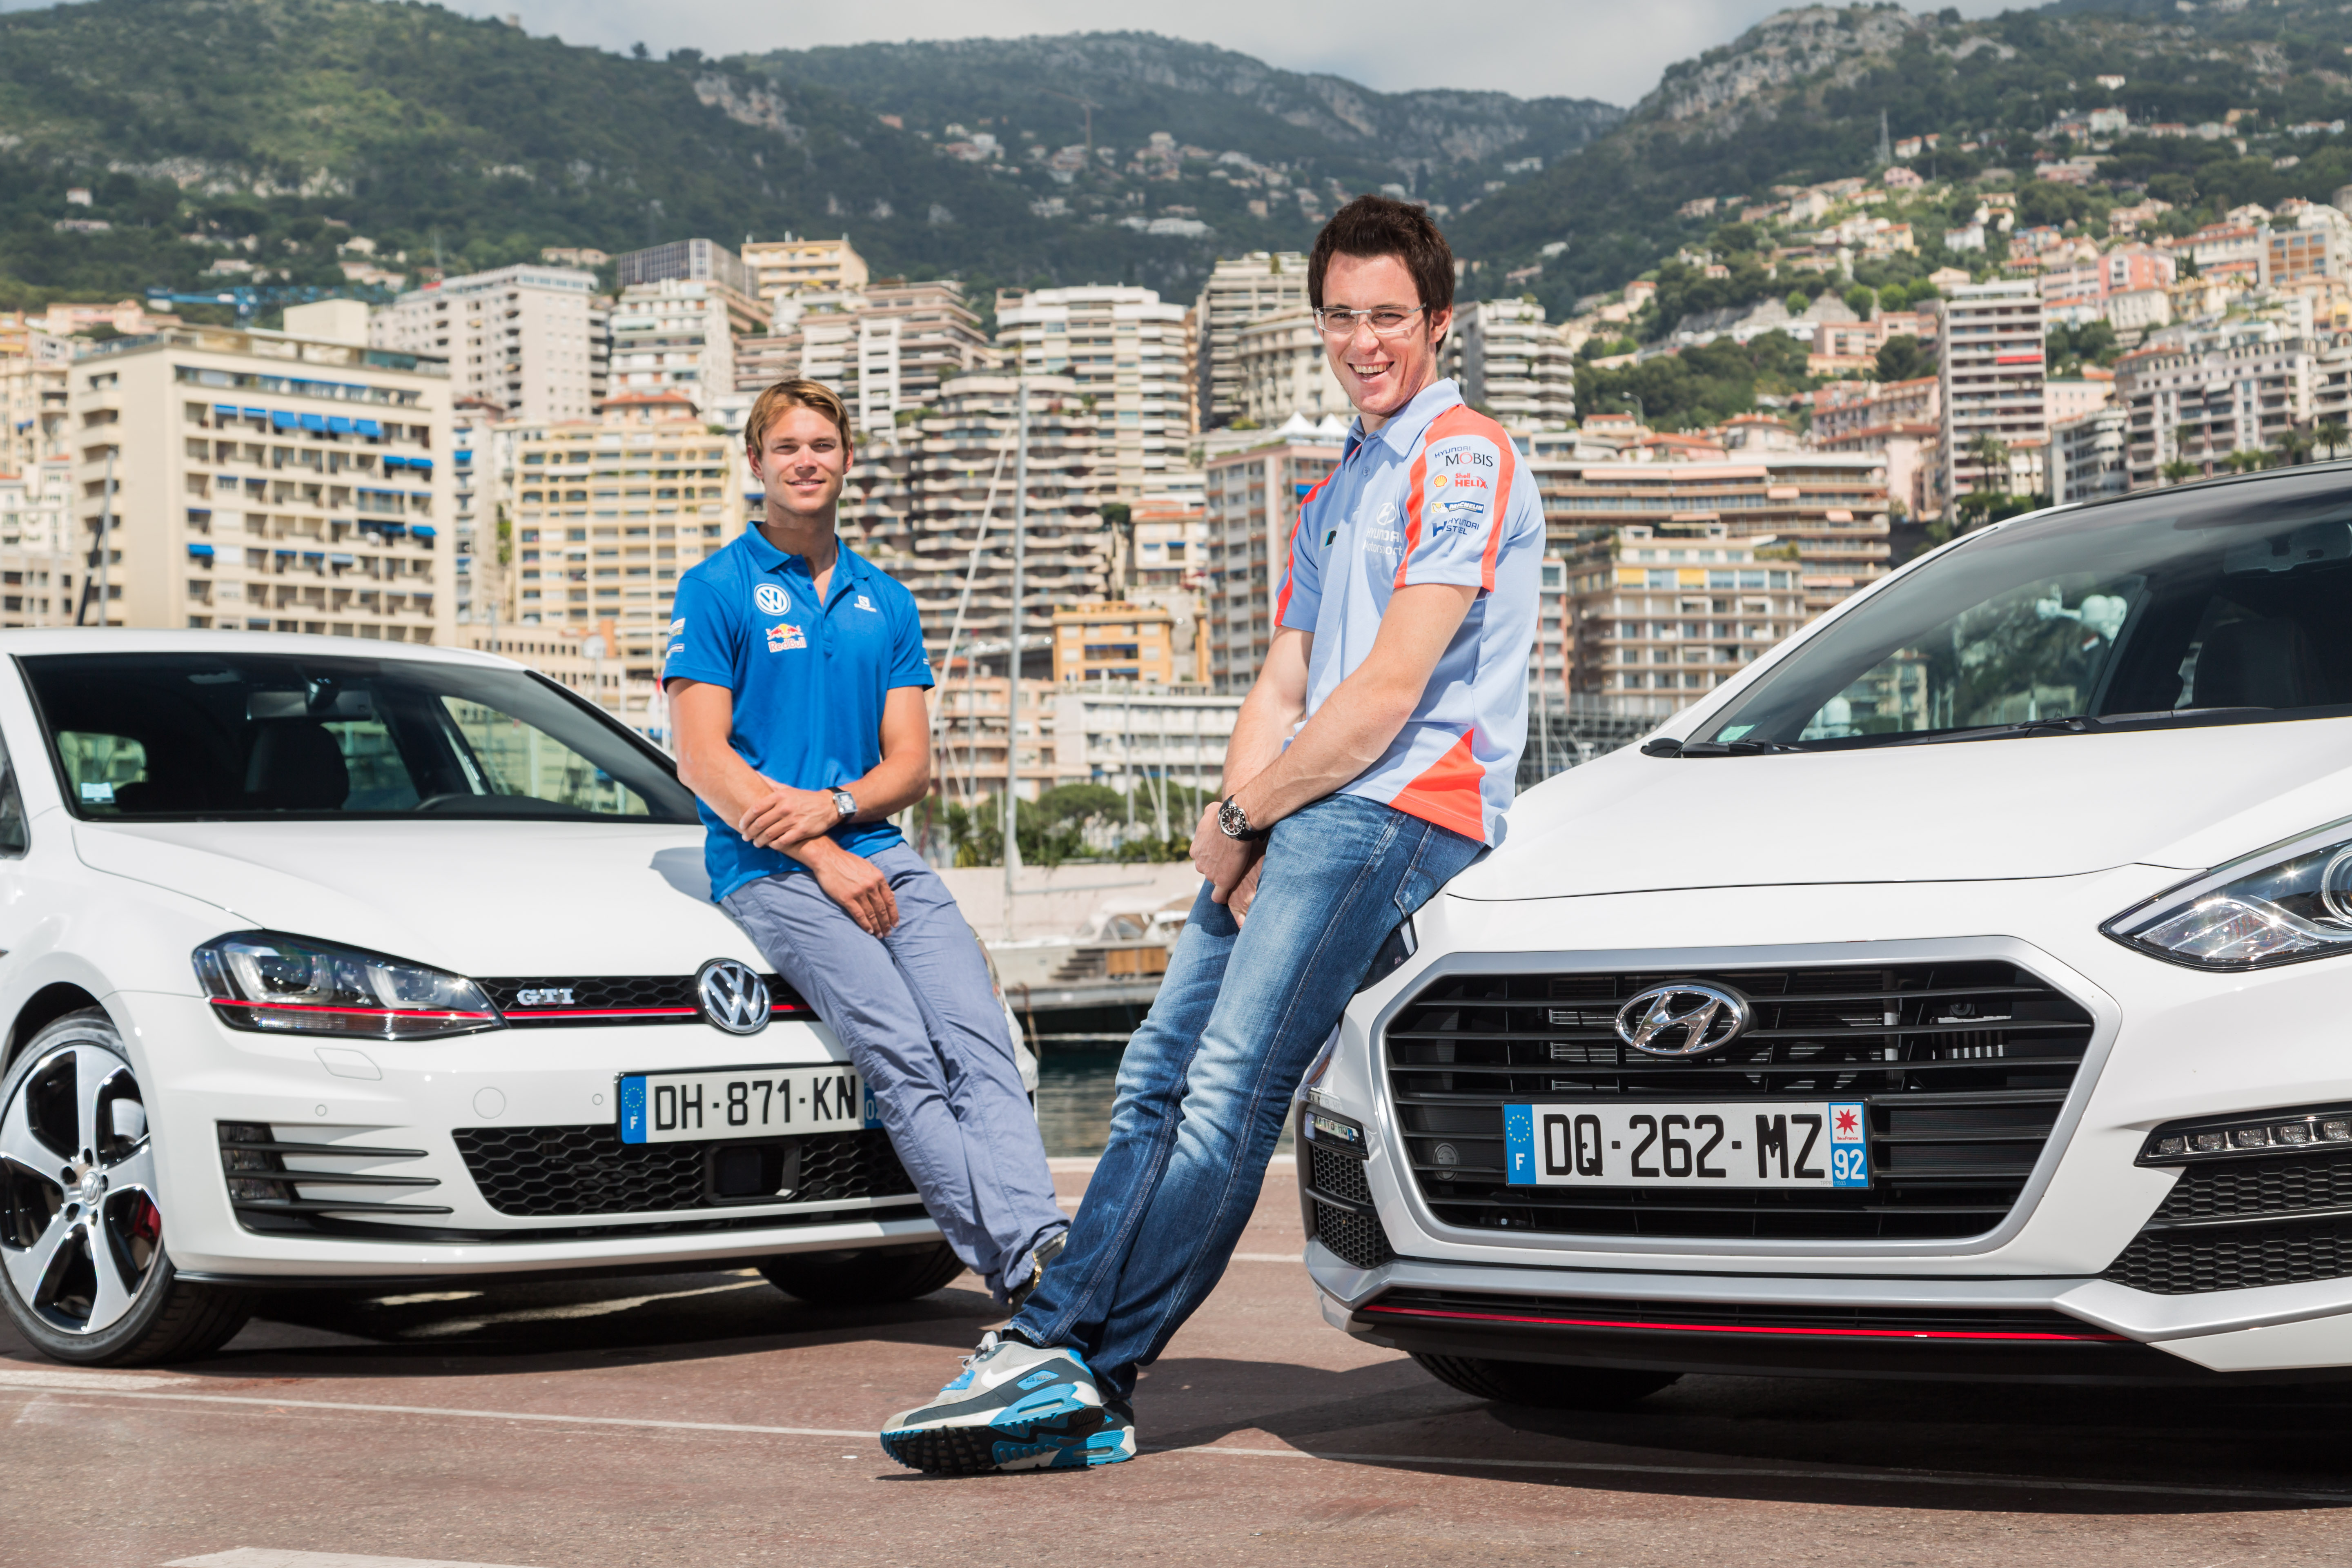 Andreas Mikkelsen et Thierry Neuville